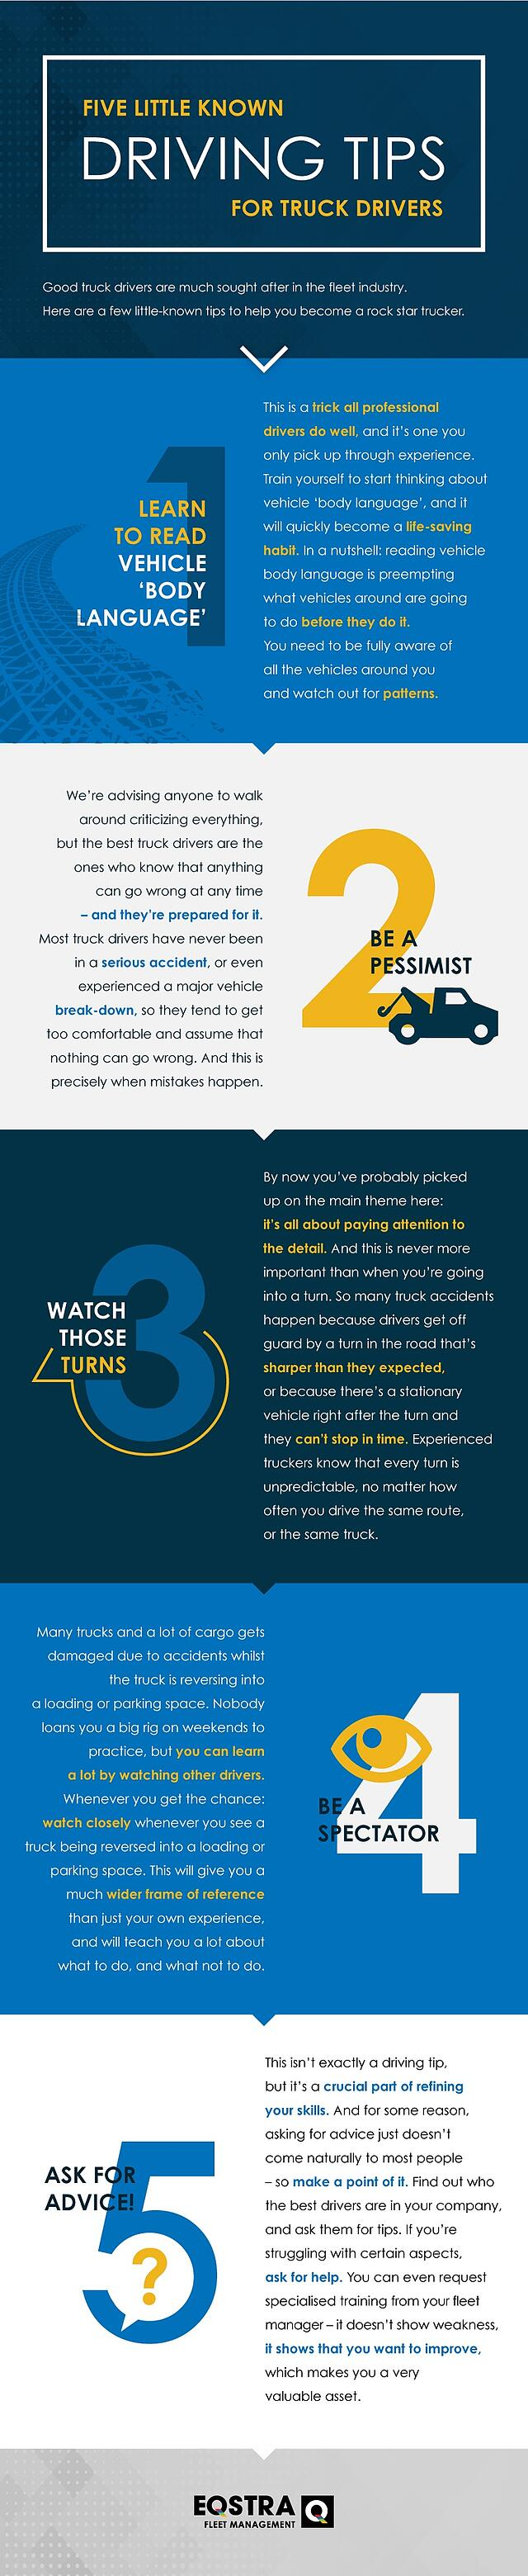 5 Little known tips for truck drivers infographic.jpg